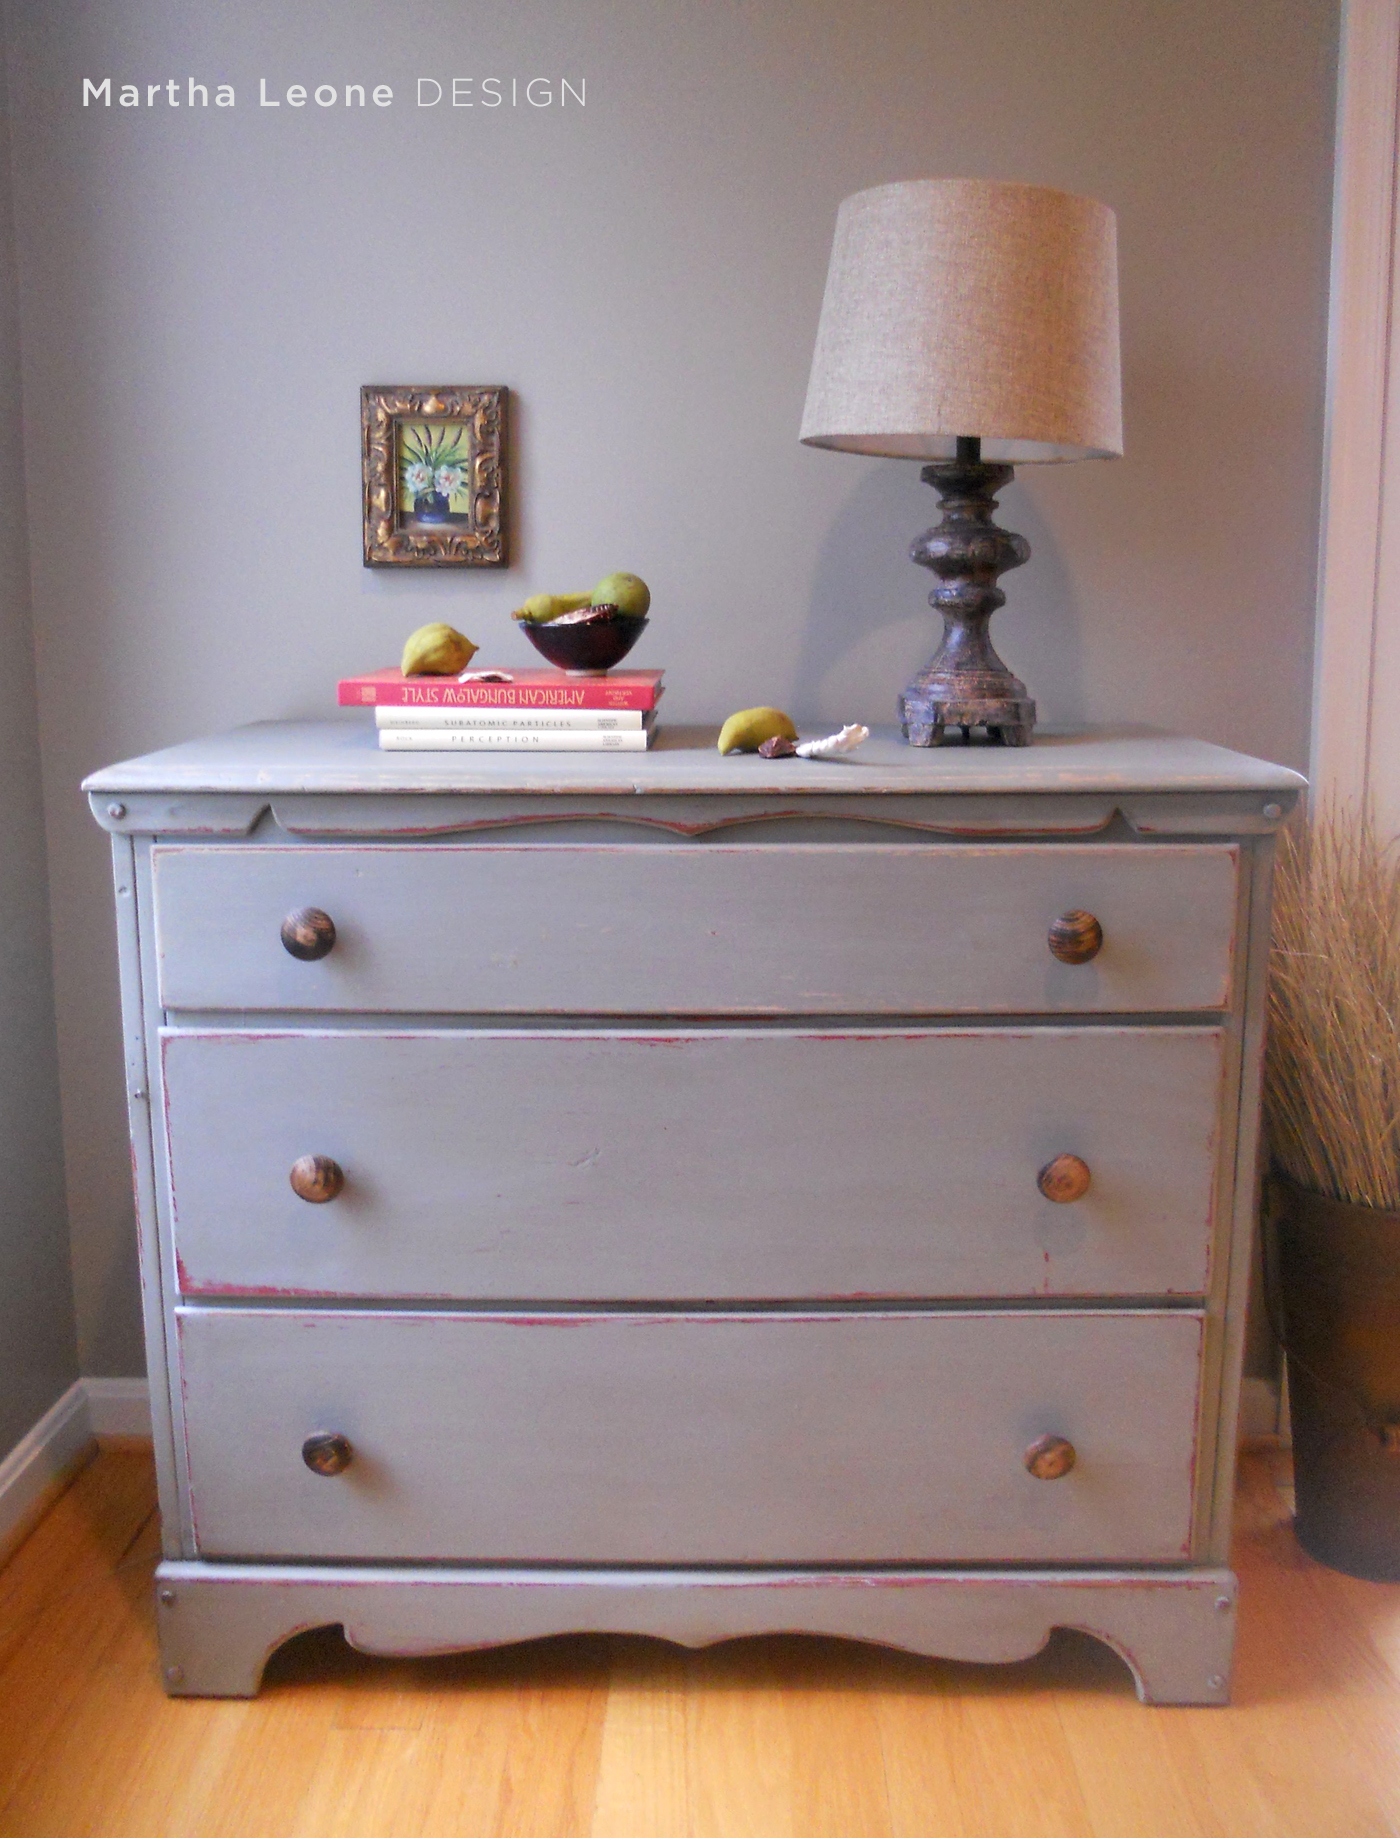 Cottage Dresser from Martha Leone Design